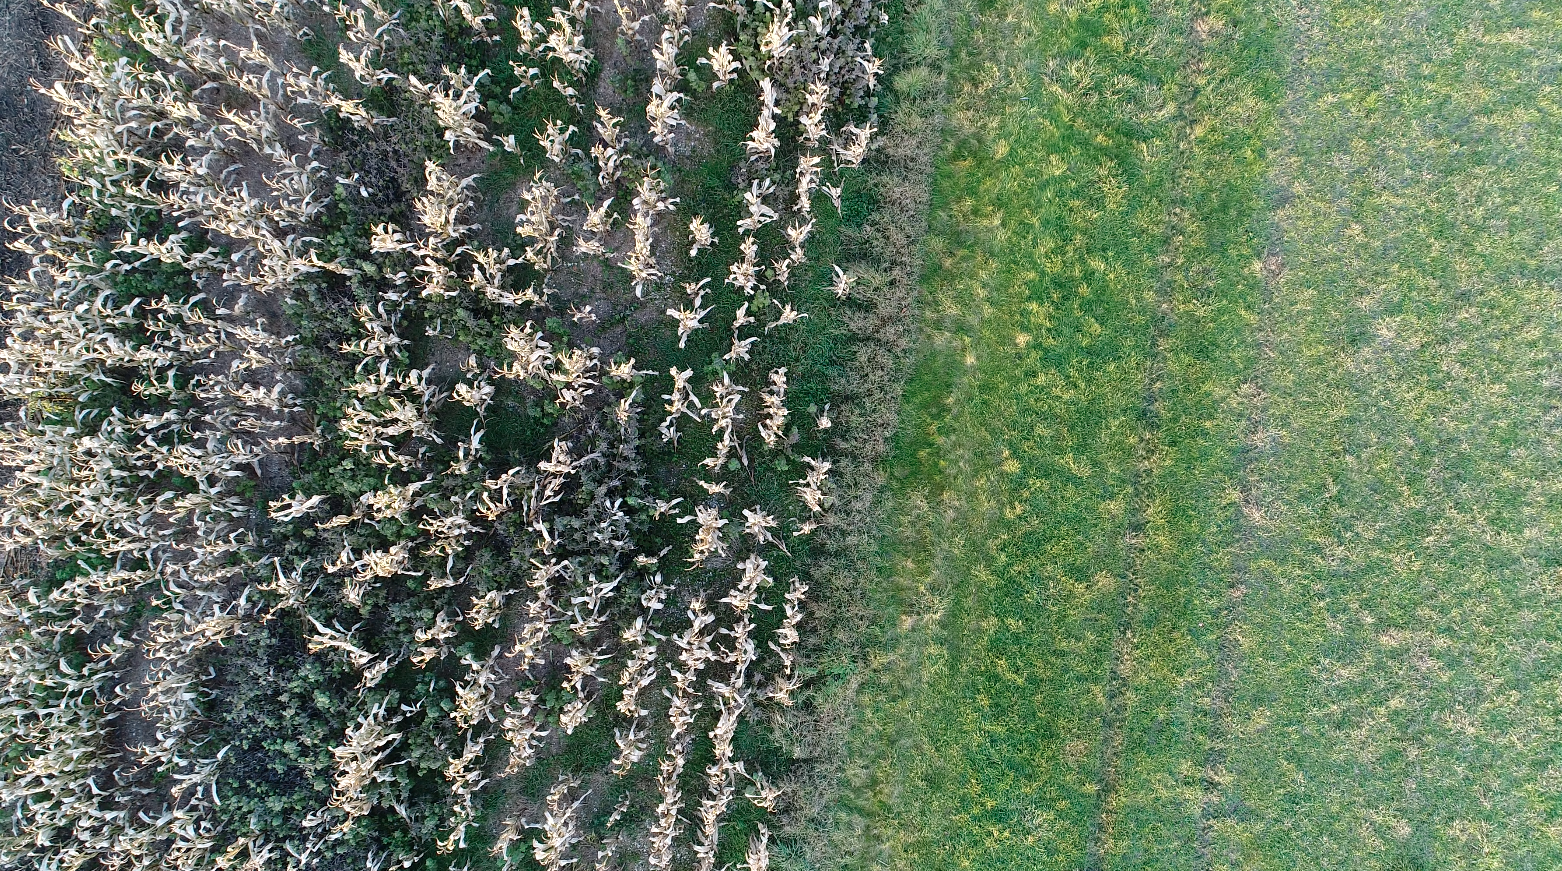 Aerial image of maize field by drones